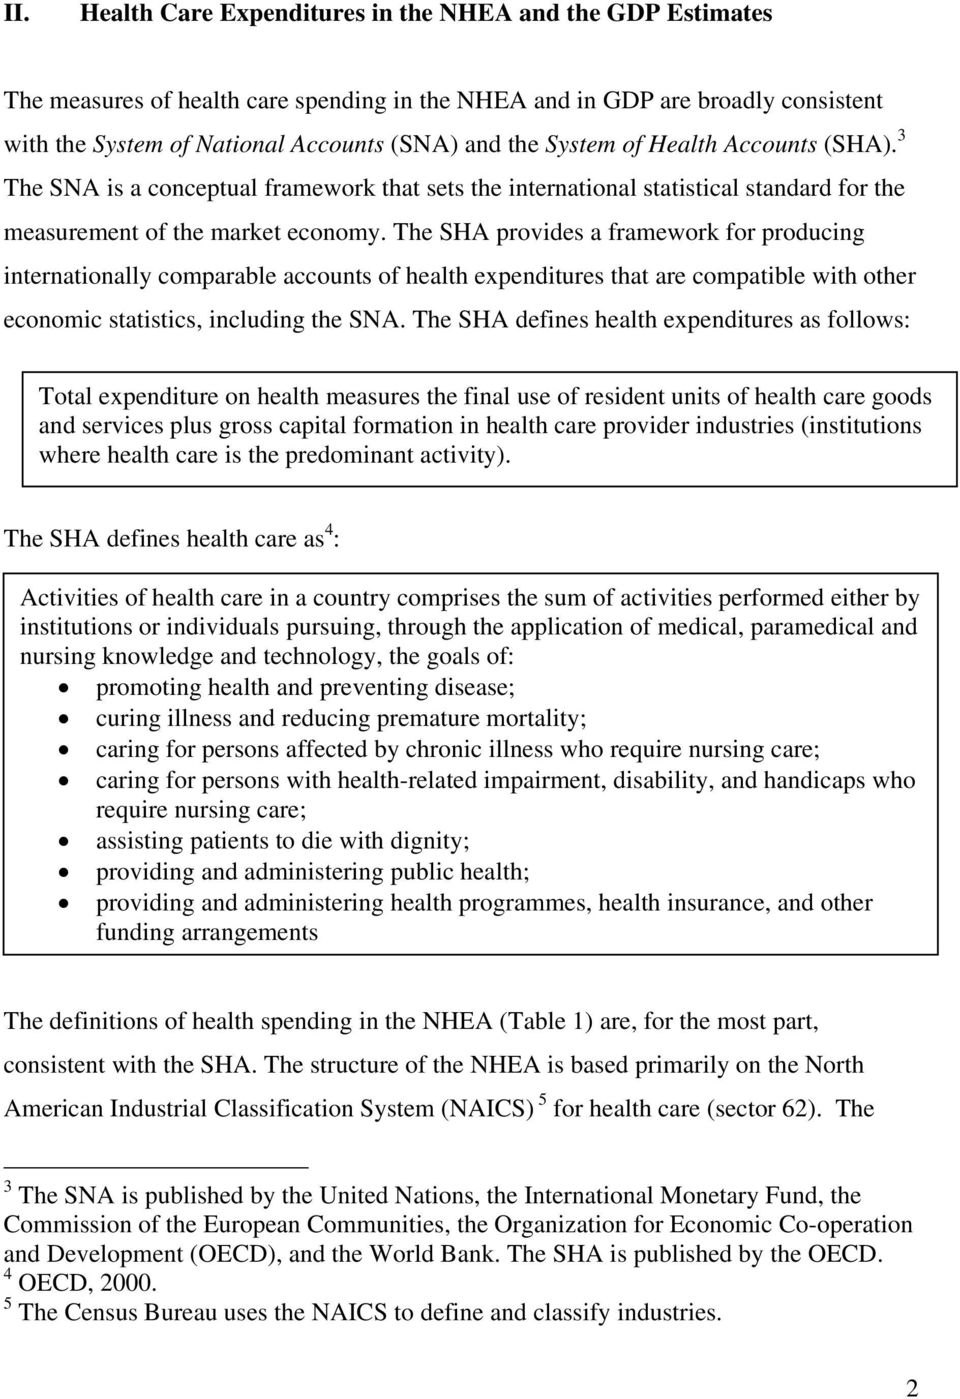 The SHA provides a framework for producing internationally comparable accounts of health expenditures that are compatible with other economic statistics, including the SNA.